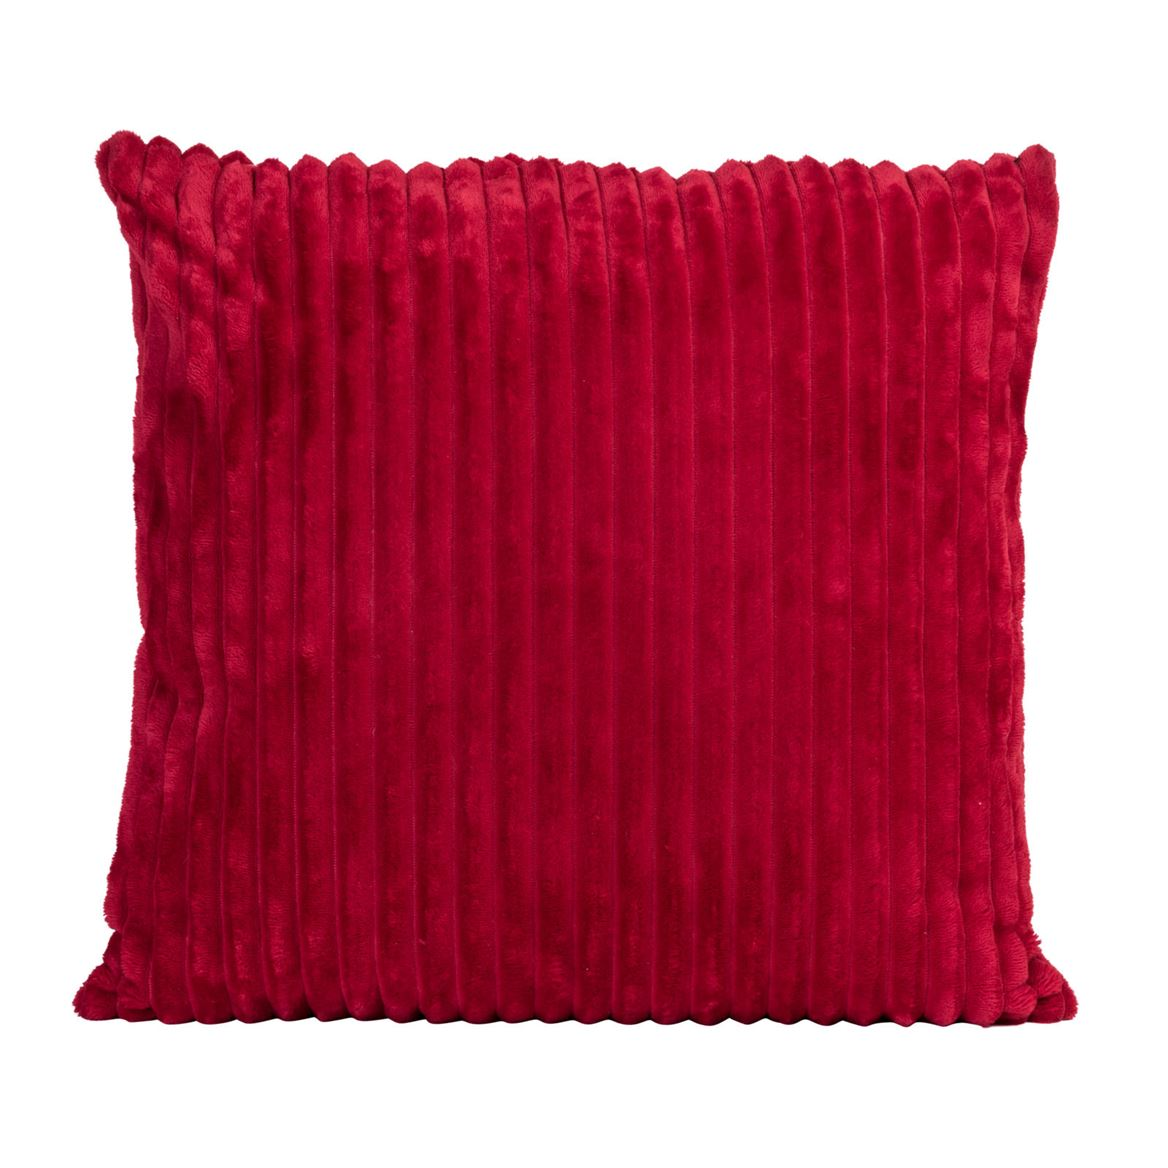 CHUBBY Coussin rouge Larg. 50 x Long. 50 cm_chubby-coussin-rouge-larg--50-x-long--50-cm